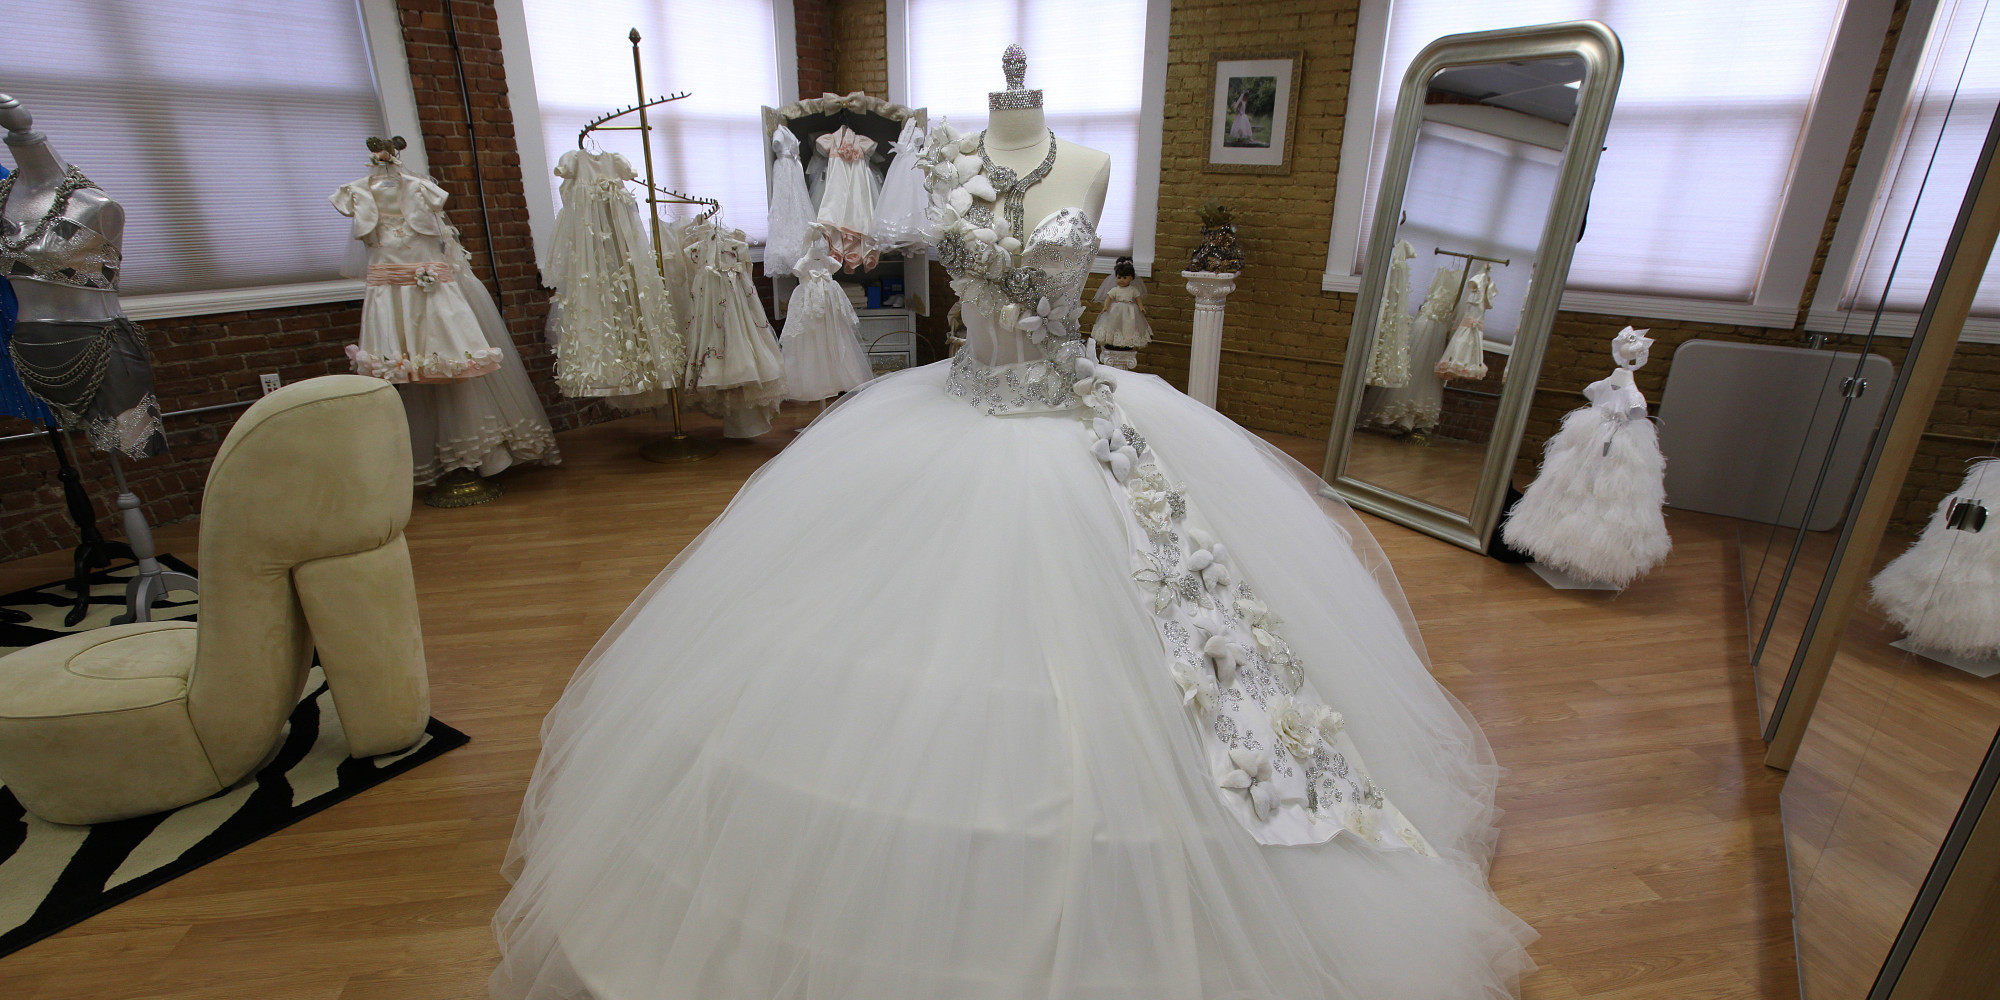 80 pound wedding dresses bedazzled in jewels this gypsy for Coming to america wedding dress